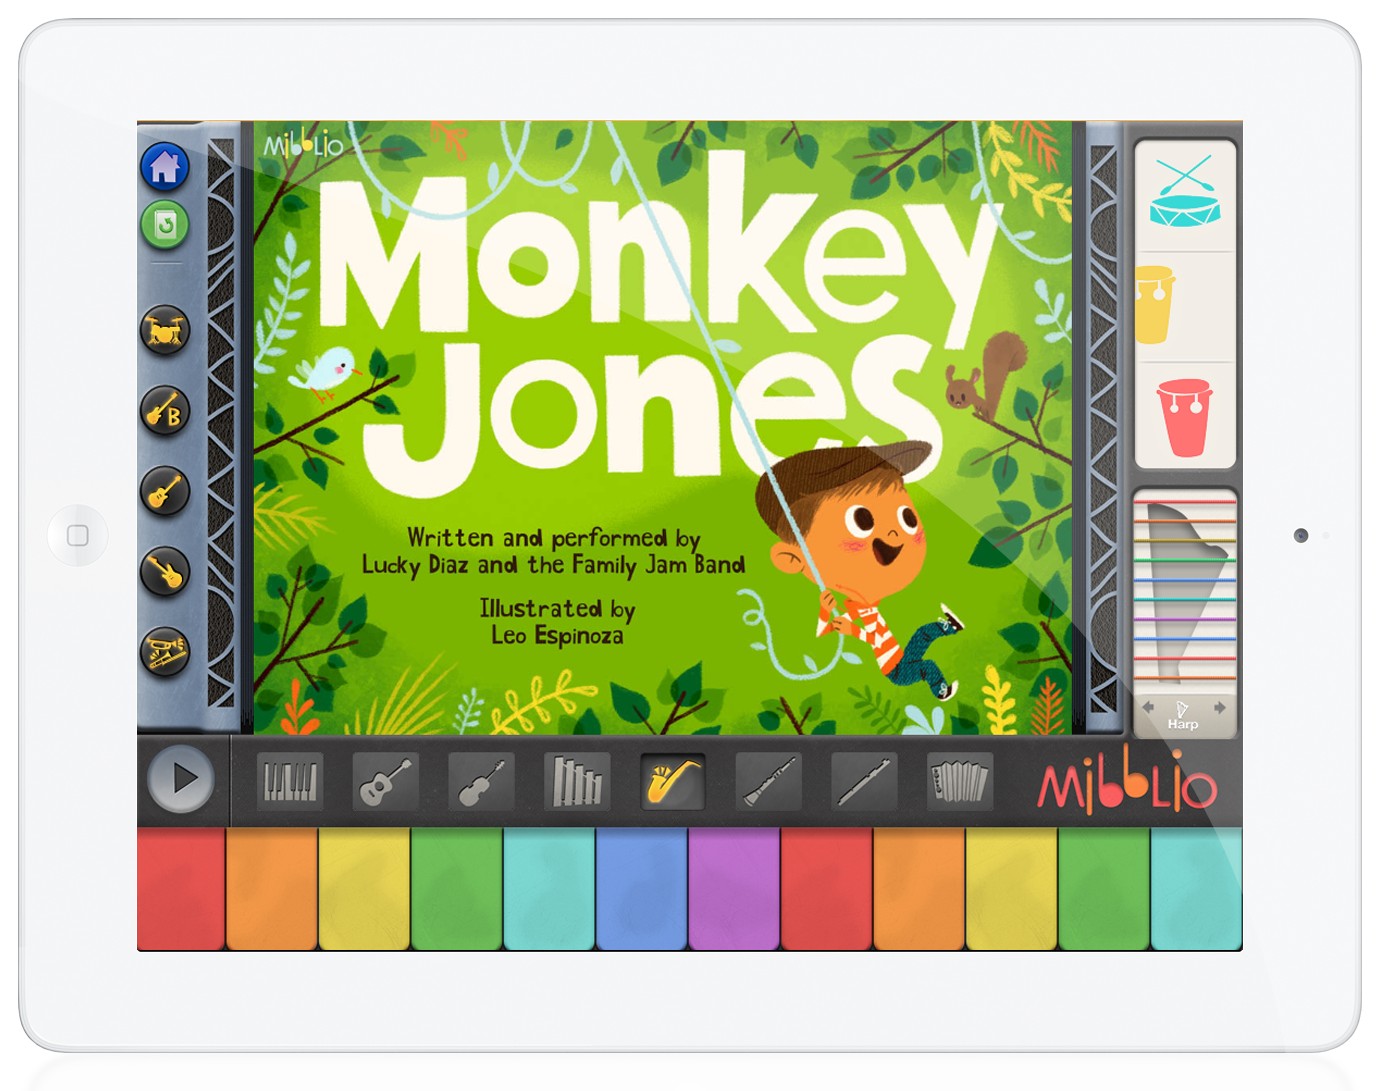 Monkey Jones is king of his backyard jungle. He sits on a bicycle throne, swings from vines, and plays instruments with his animal friends!